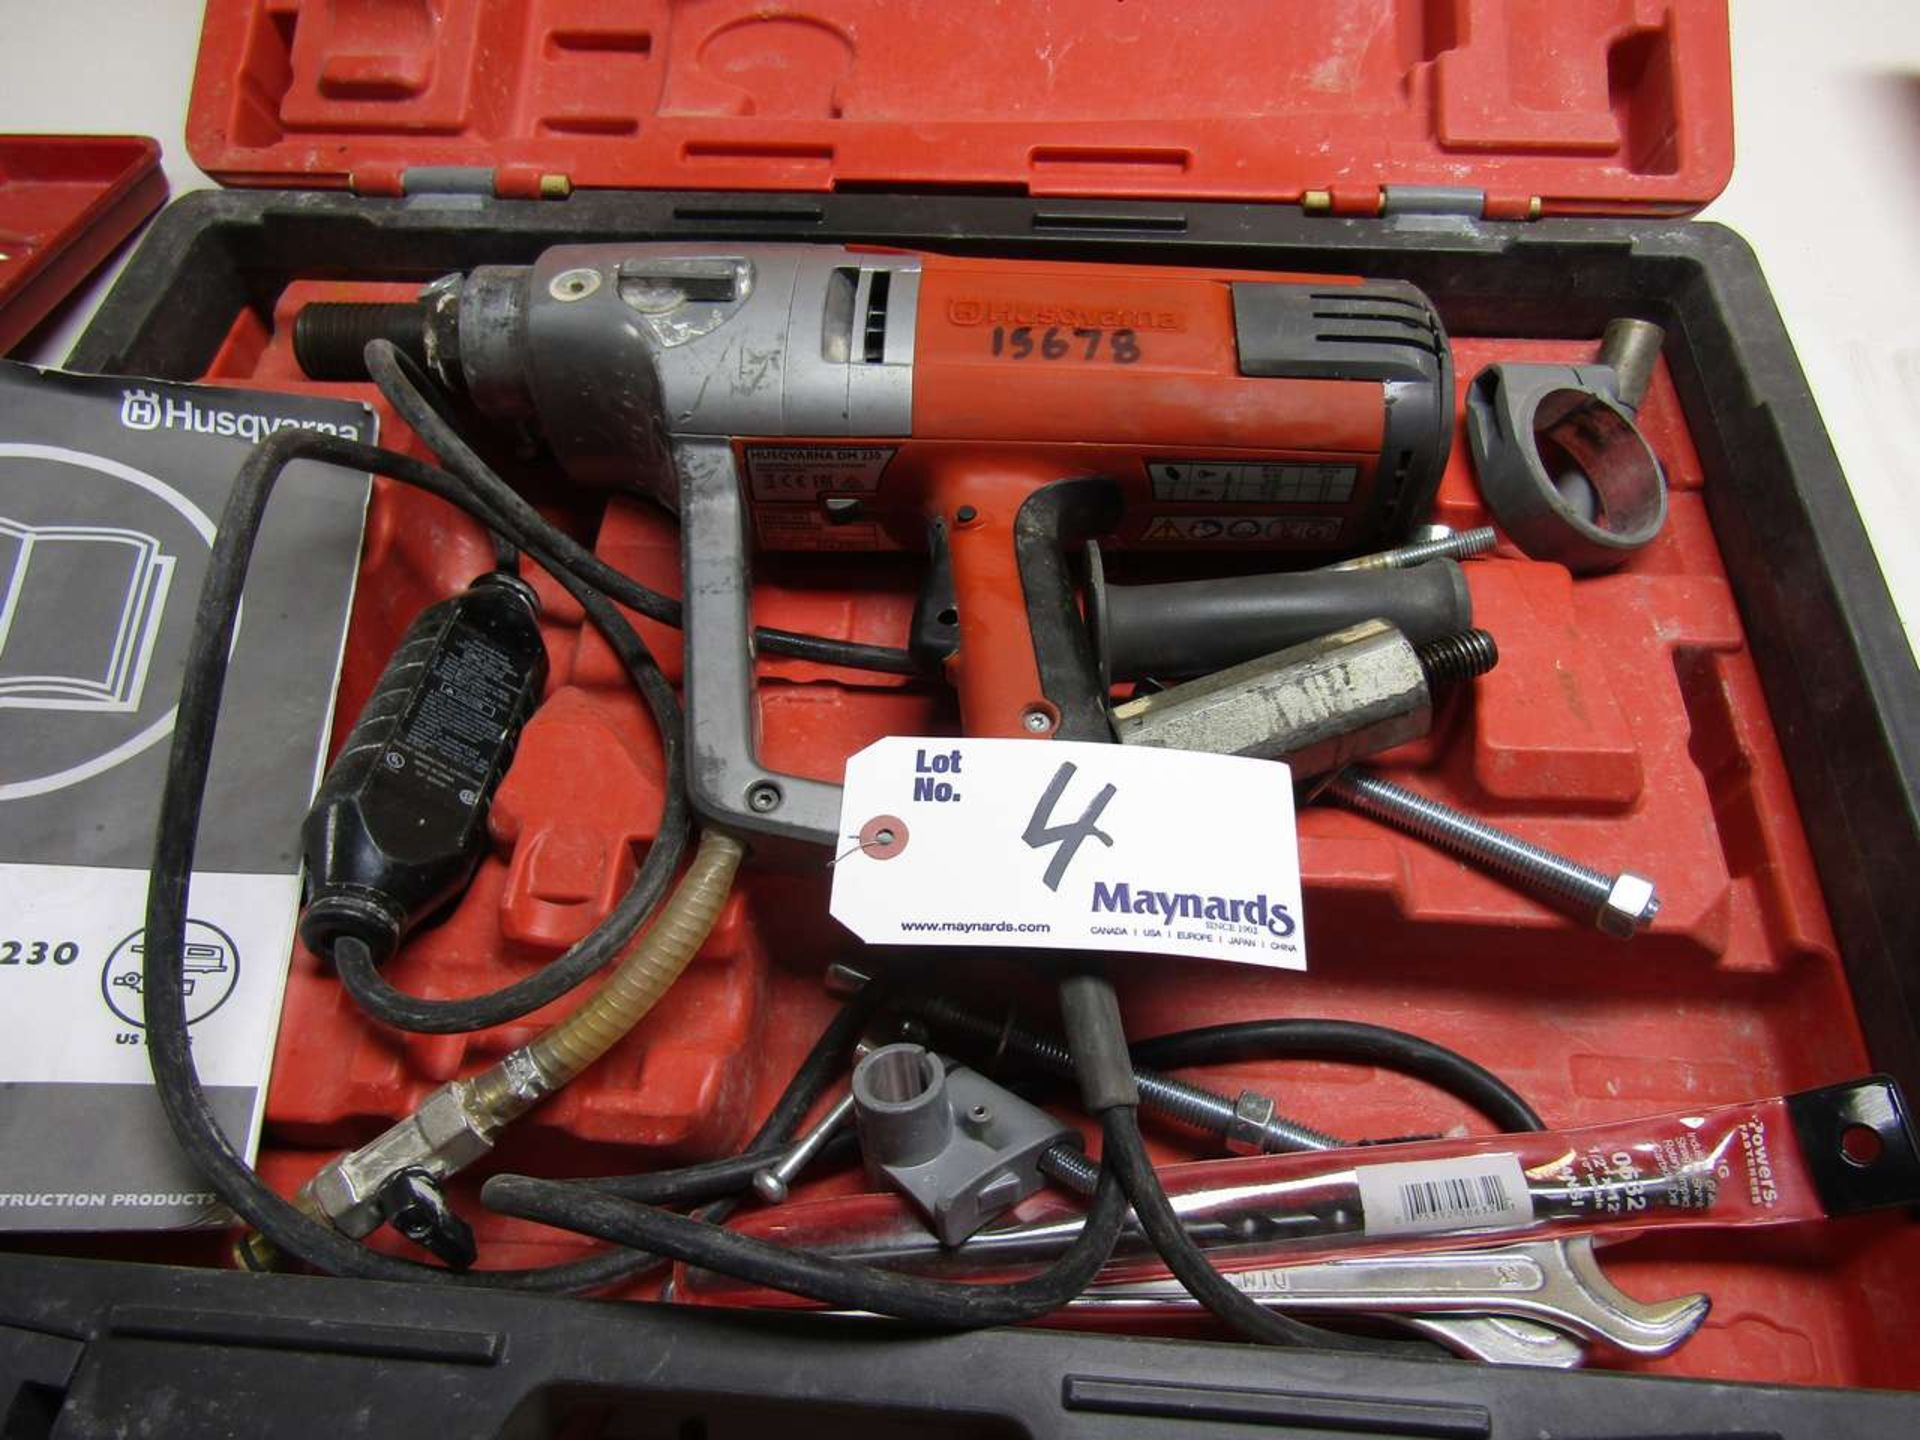 Lotto 4 - Husqvarna DM230 Drilling Machine